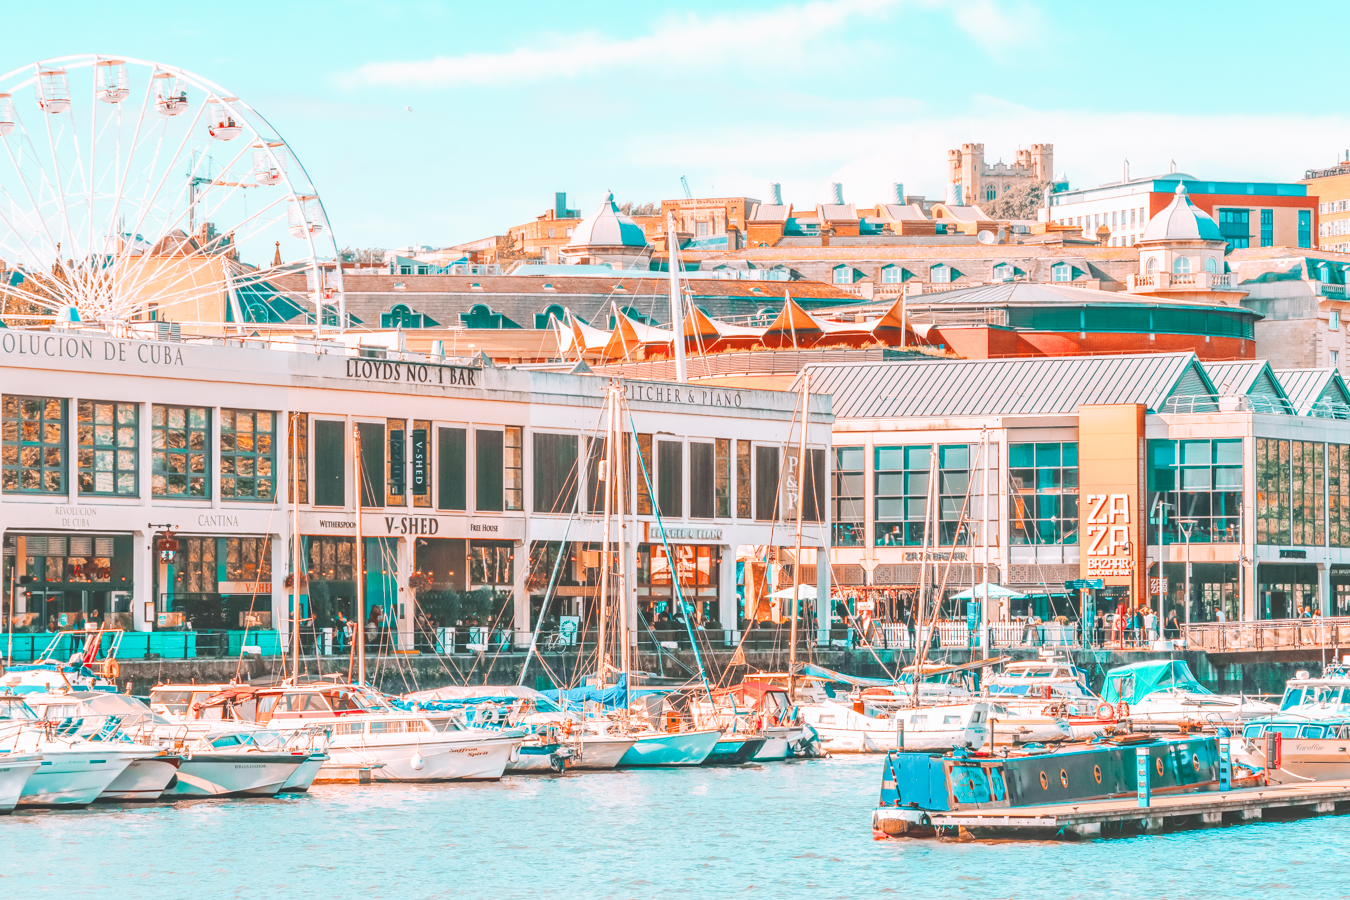 Buildings, boats, and a Ferris wheel